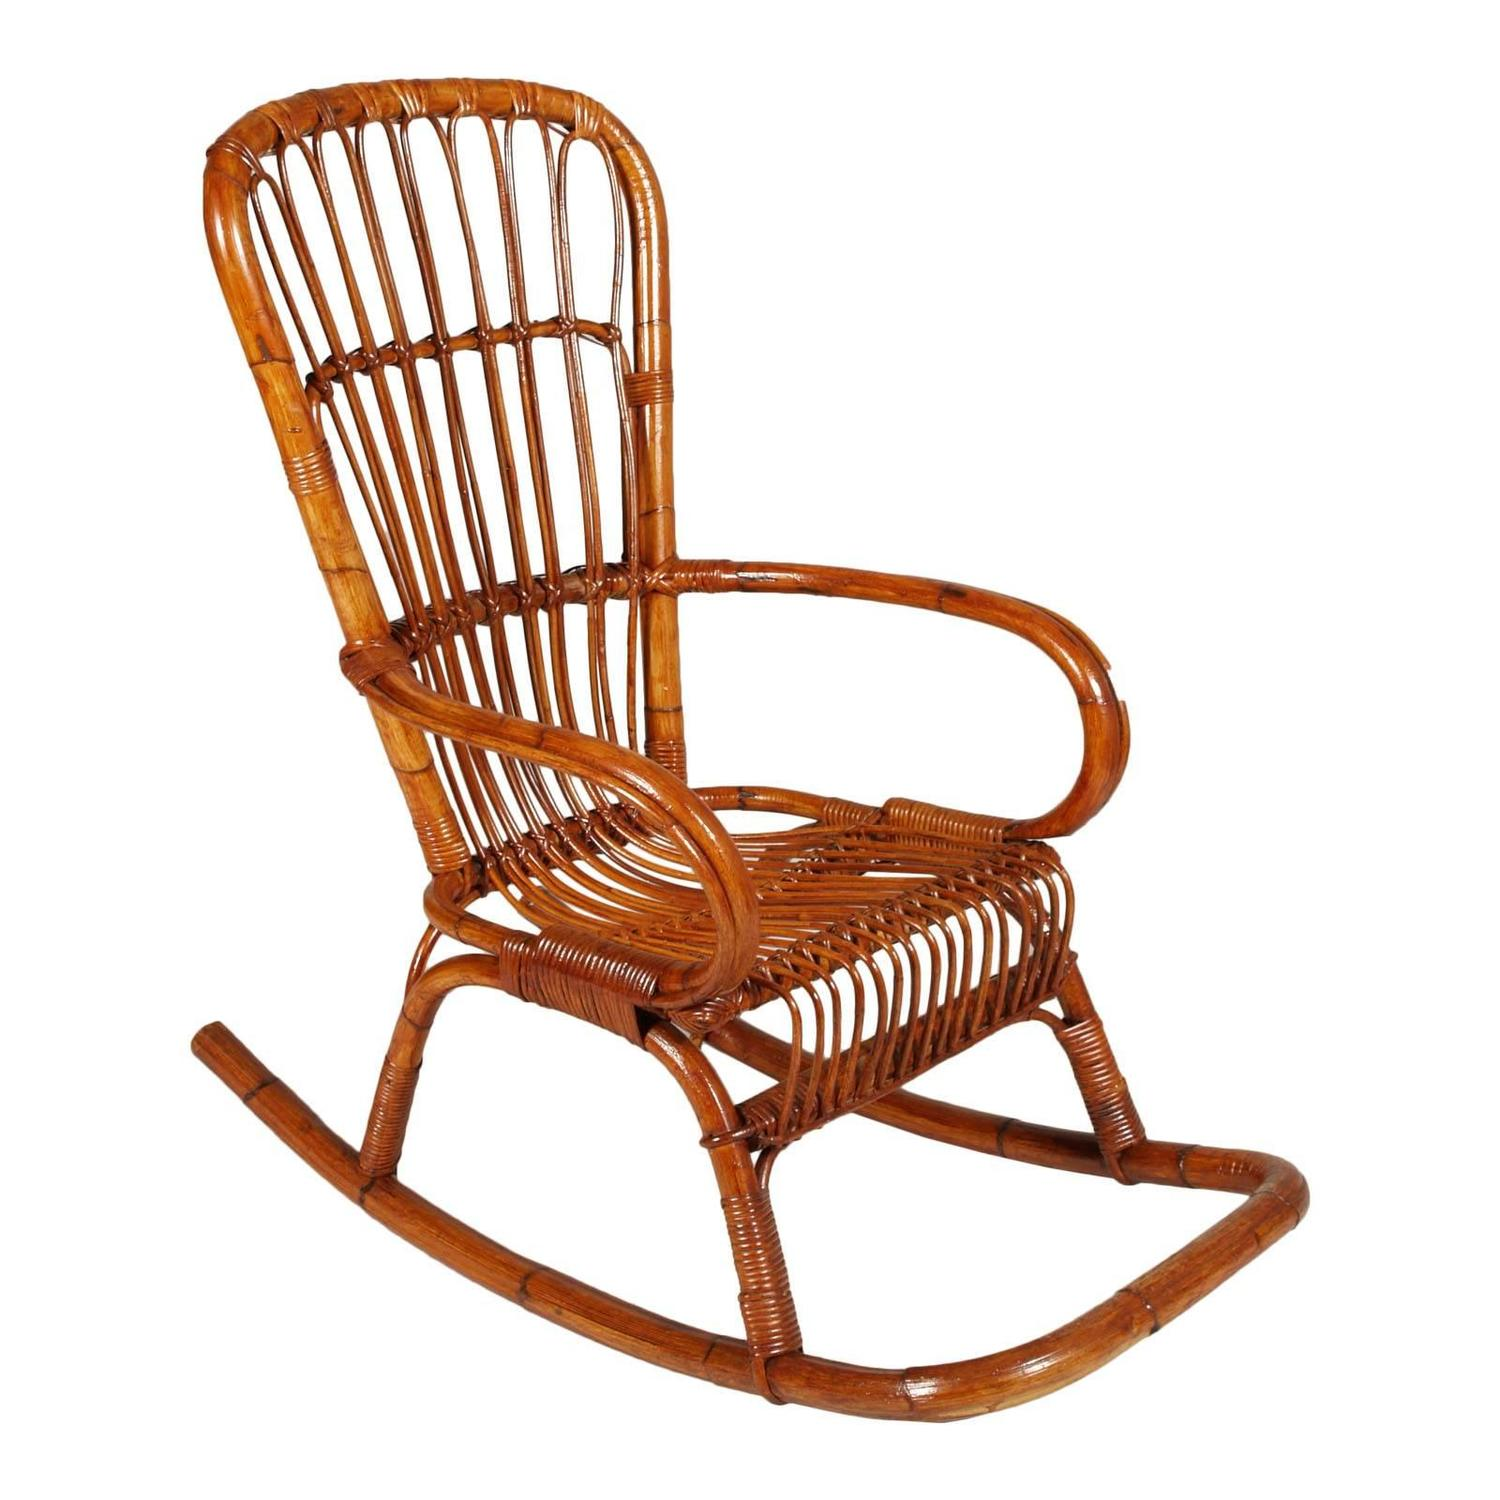 italian mid century modern bamboo rocking chair attributable